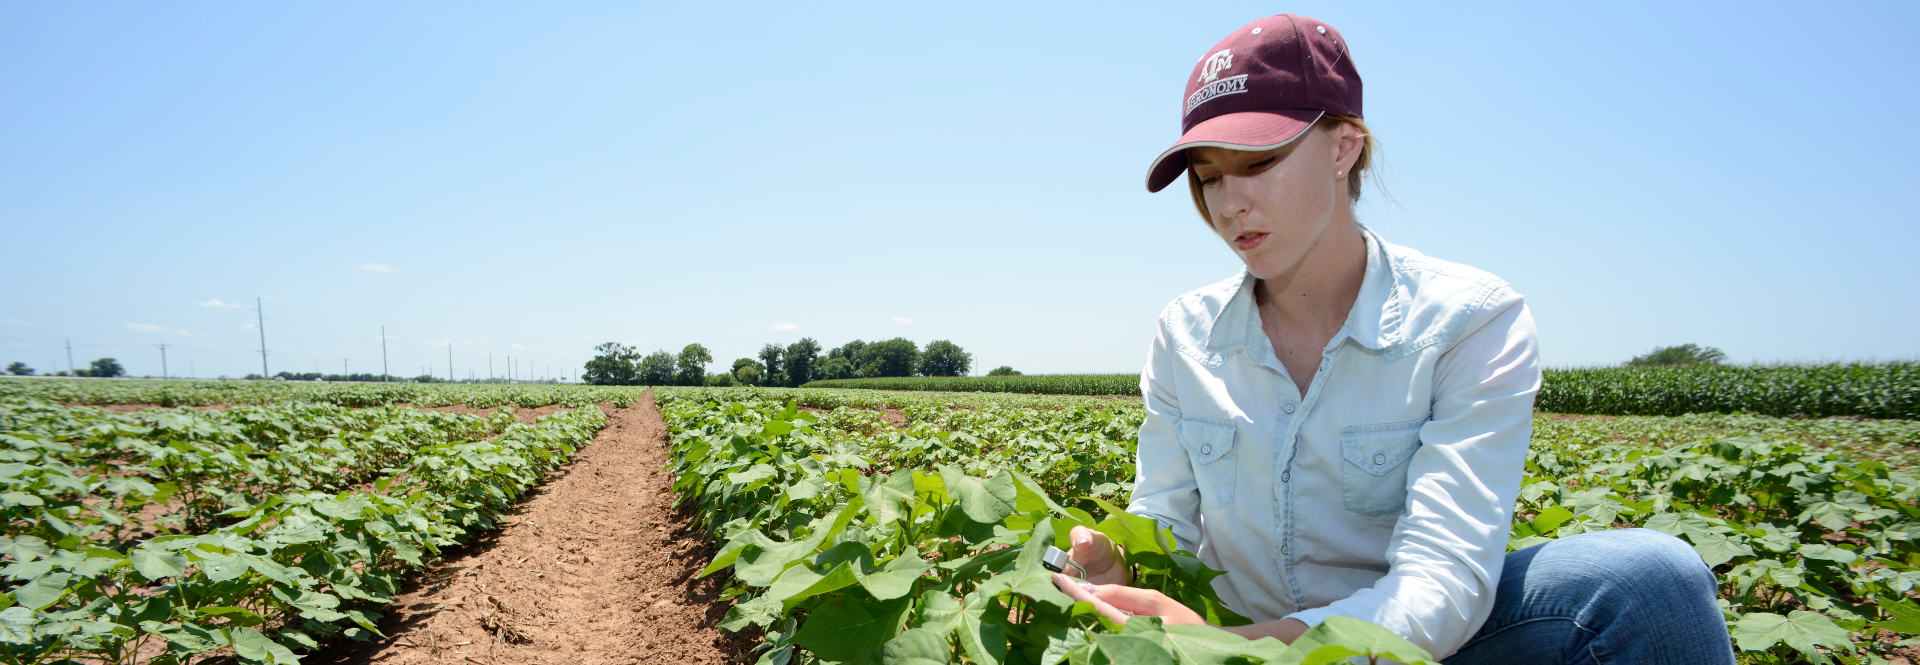 A Lead by Example donation creates the Norman Borlaug Endowed Research Scholars Program to foster the next generation of agricultural pioneers.